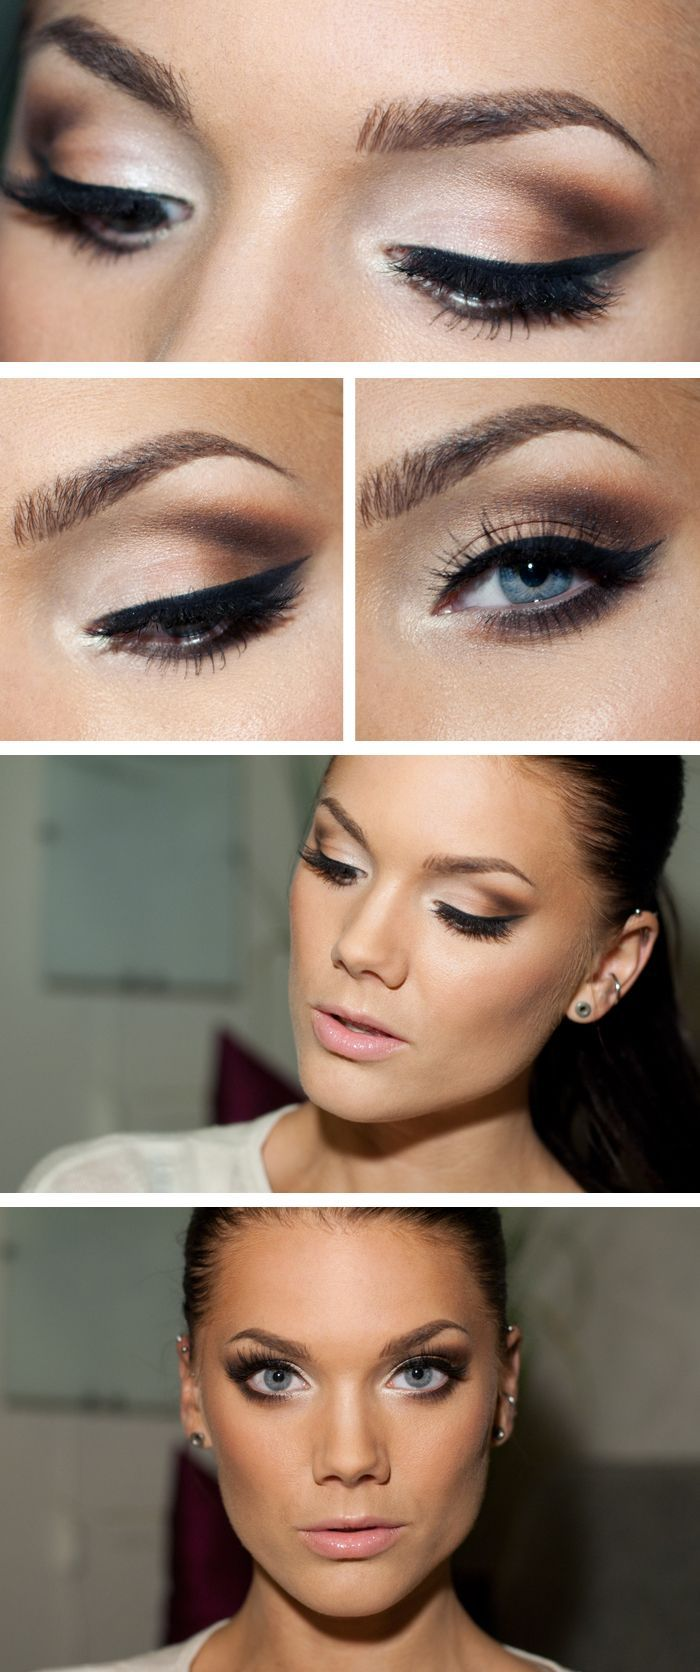 """Today's Look """"After 13 Hours"""" -Linda Hallberg (this beautiful nude smokey eye was photographed 13 hours later!!! ) 03/28/13"""